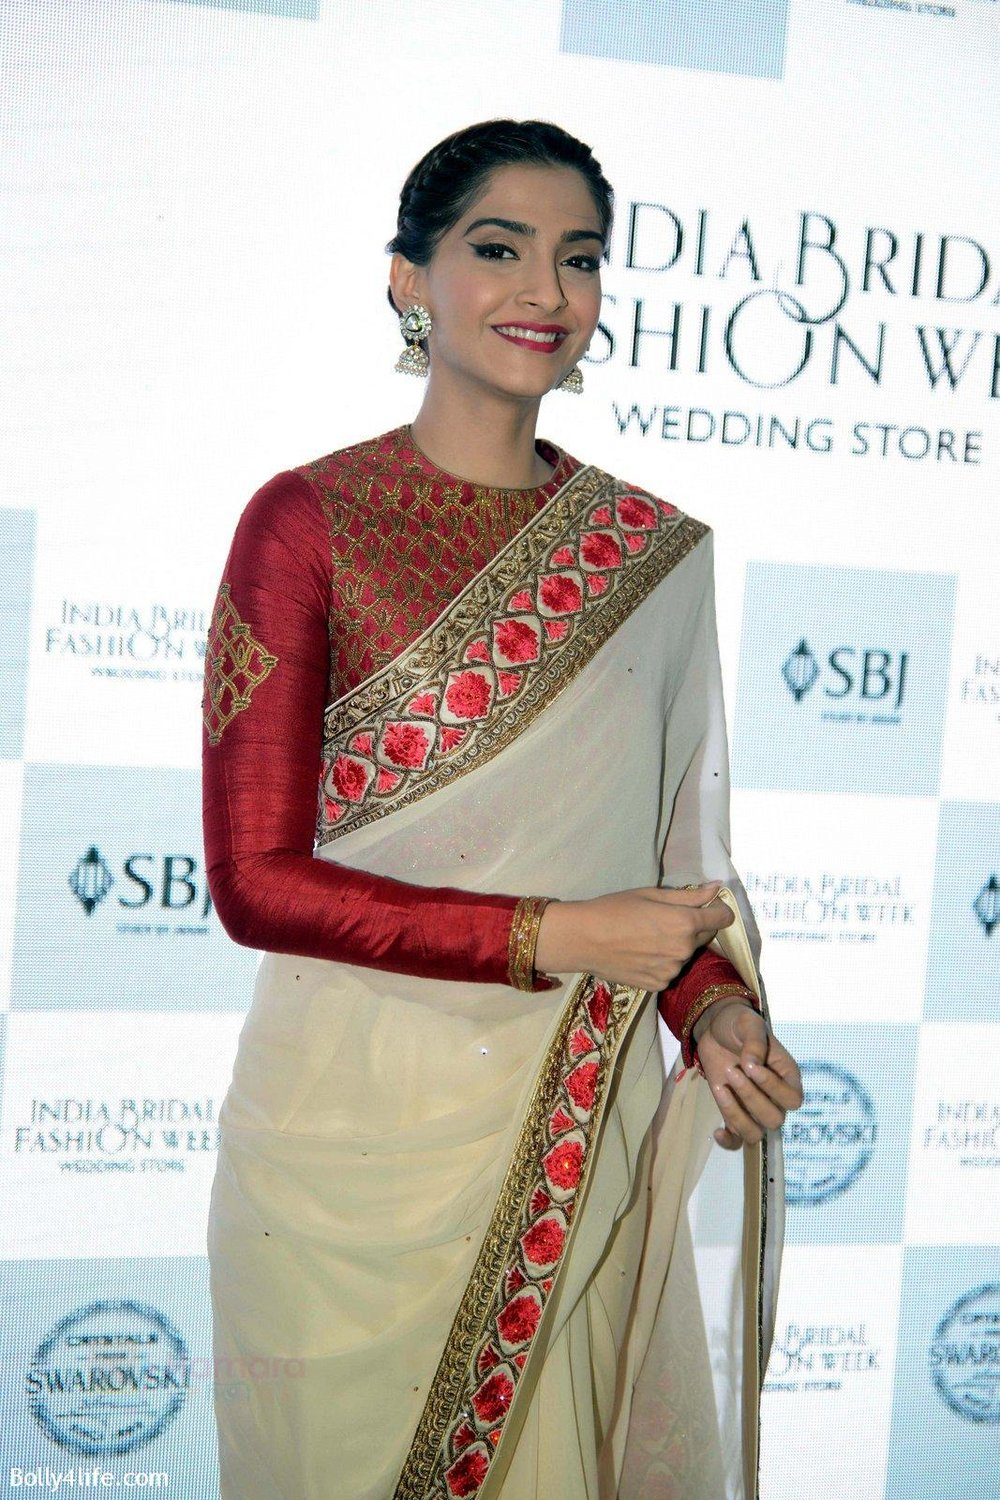 Sonam-Kapoor-during-the-launch-of-the-first-Indian-Bridal-Fashion-Week-Wedding-Store-in-New-Delhi-on-9th-Sept-2016-25.jpg